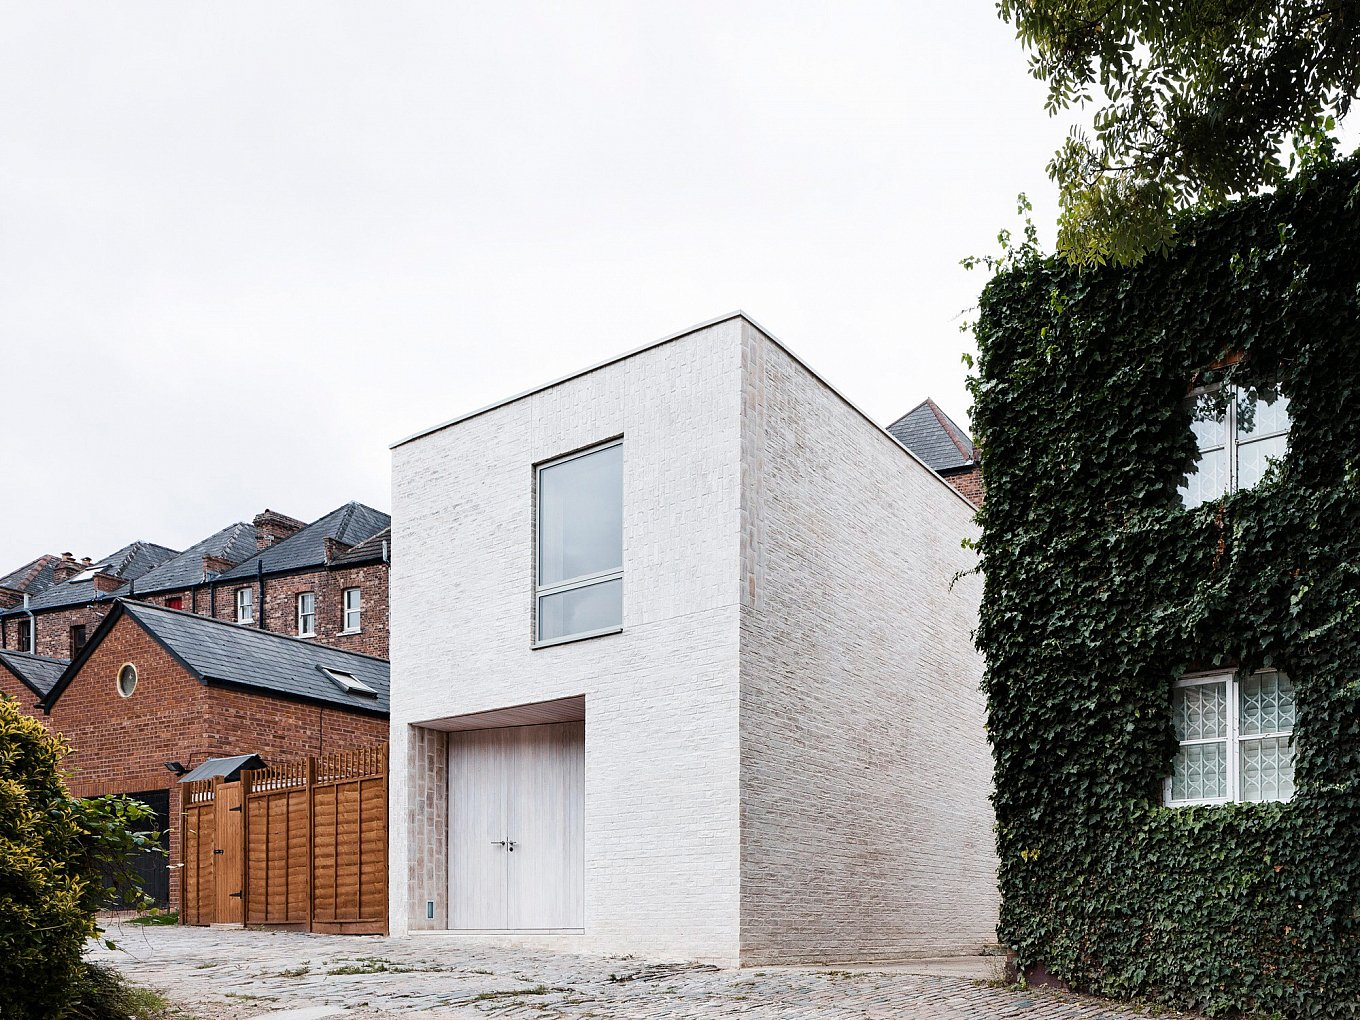 mews-house-russell-jones-1